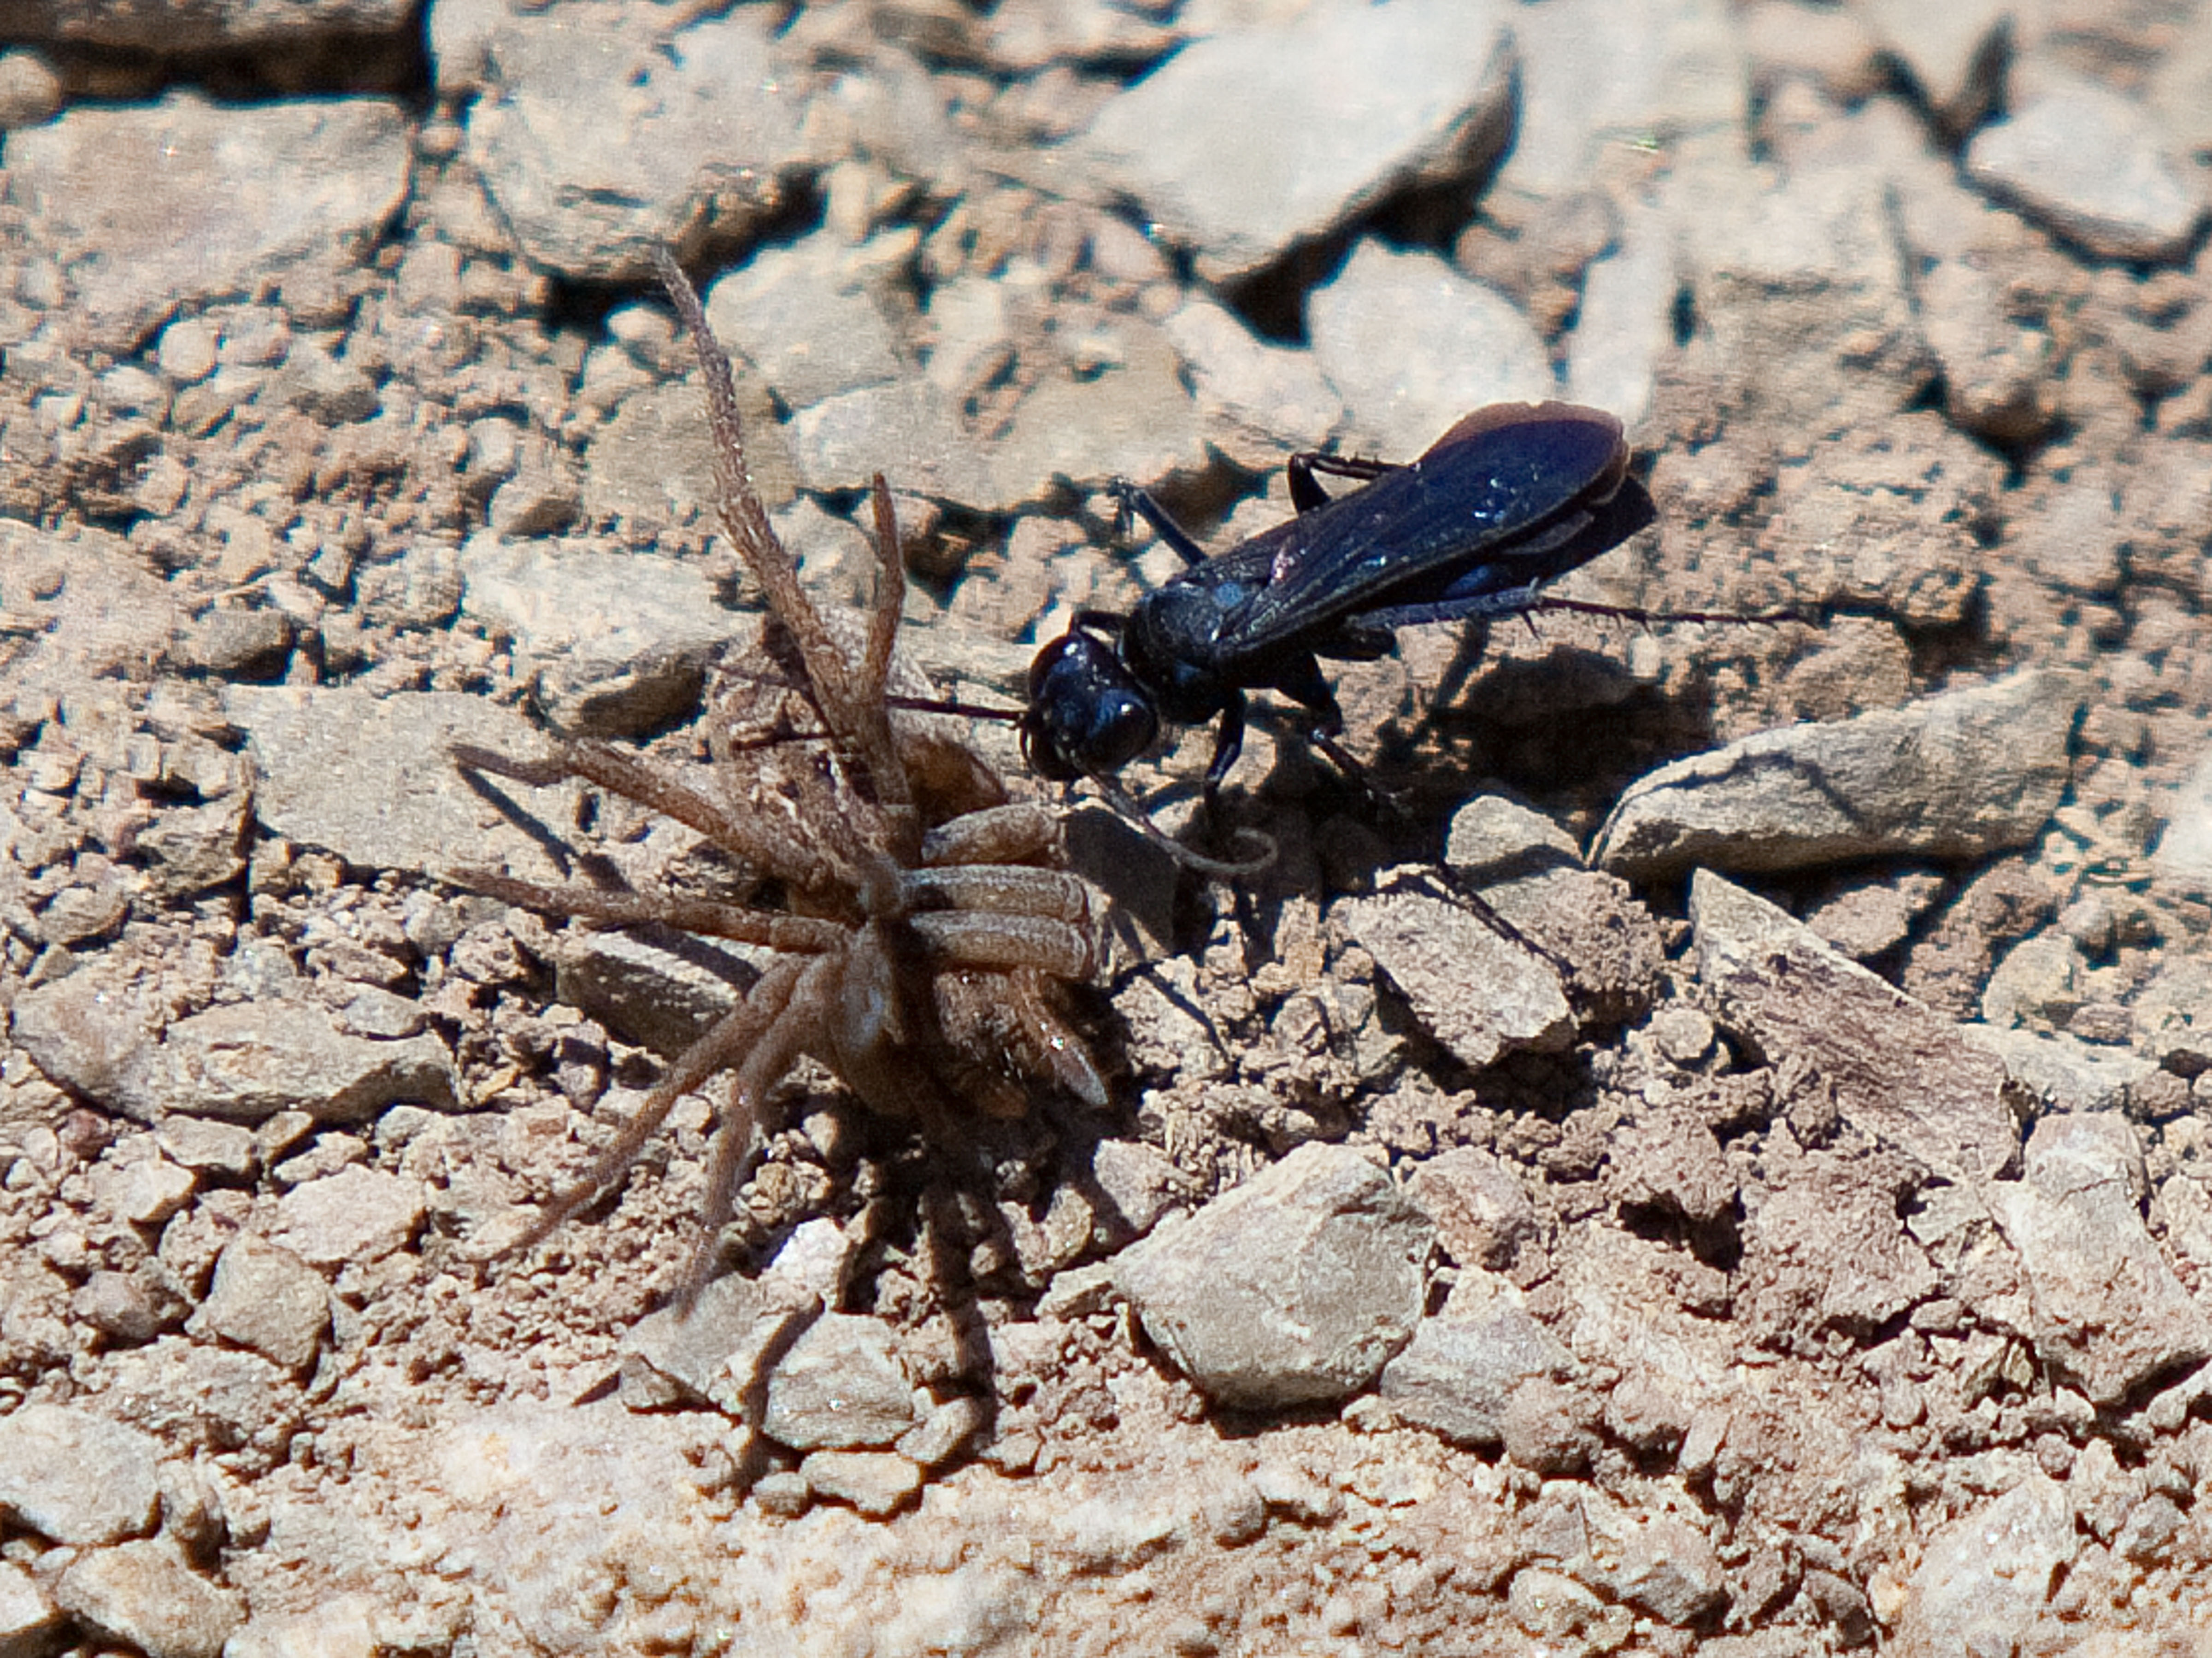 Blue Insect And Dead Spider